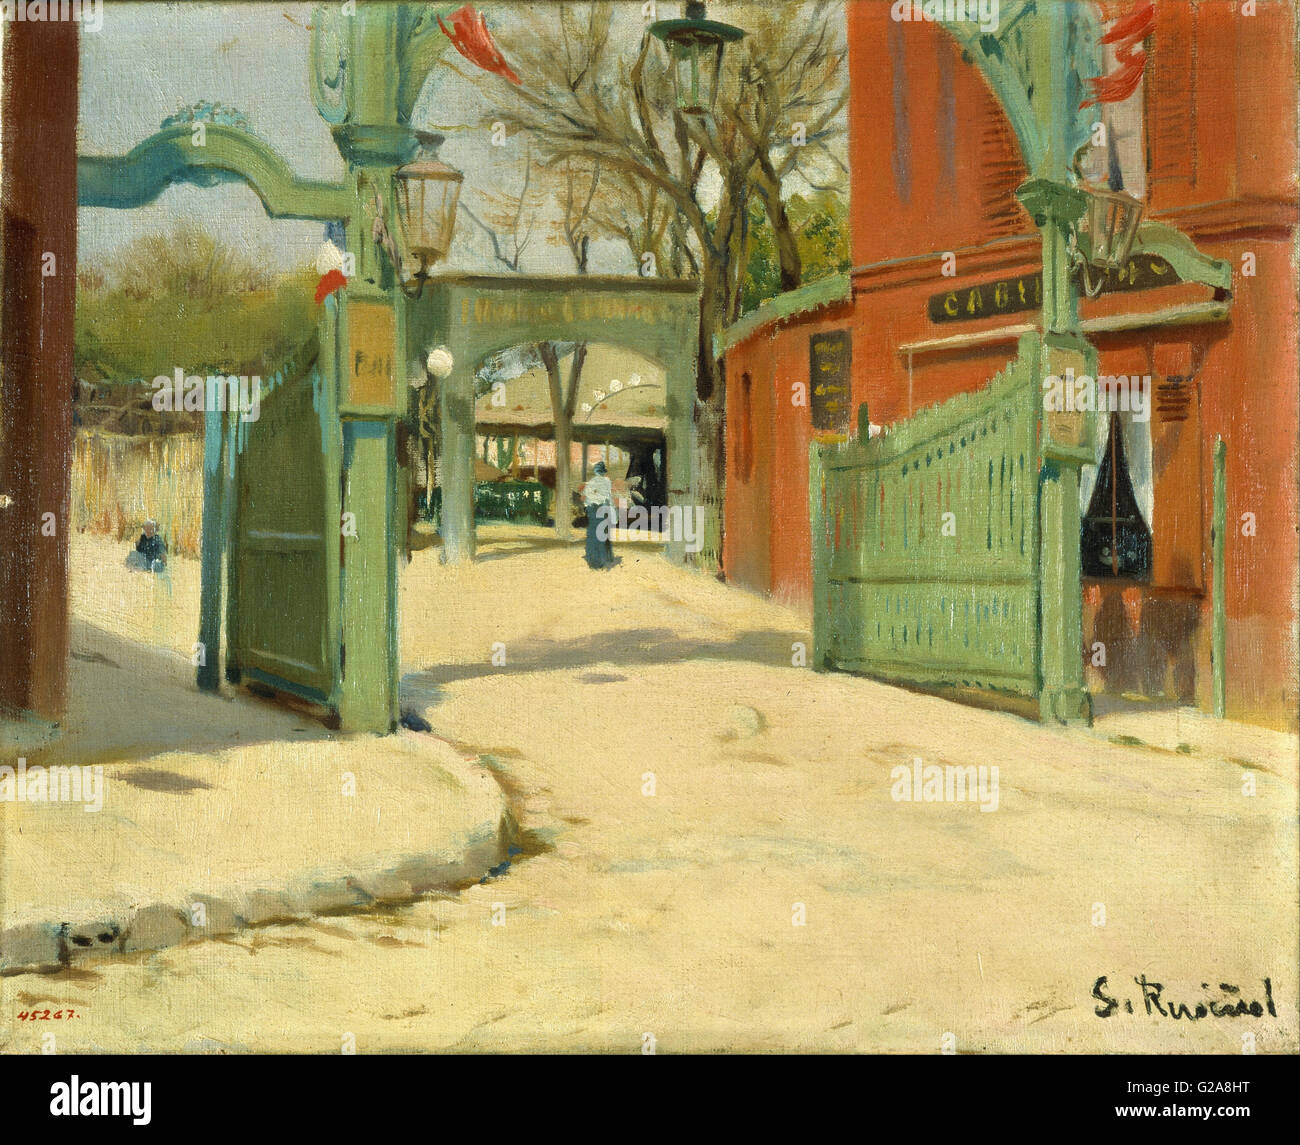 Santiago Rusiñol - Entrance to the Park of the Moulin de la Galette  - MNAC - Barcelona - Stock Image